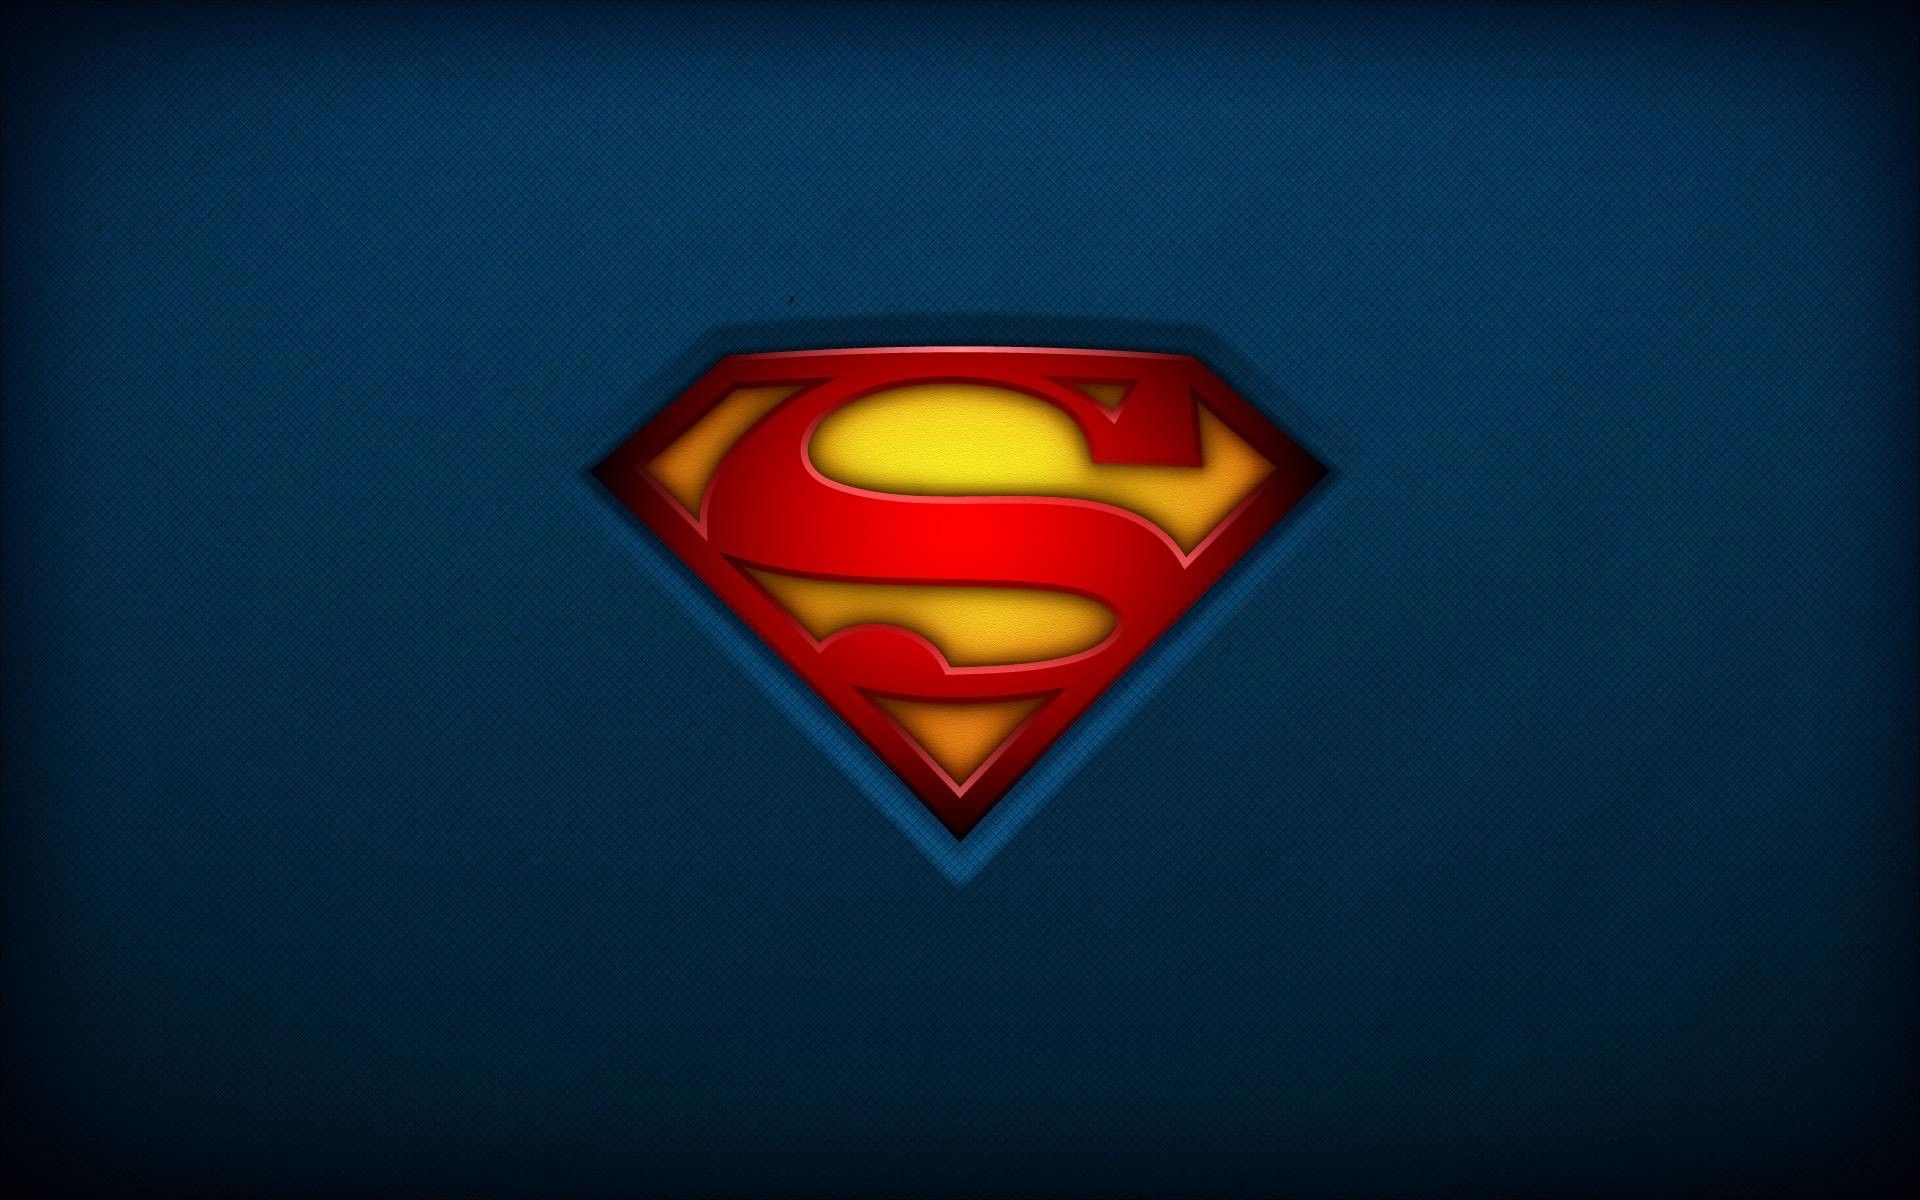 1920x1200 Superman Logo Desktop Pics Wallpaper - HD Wallpapers